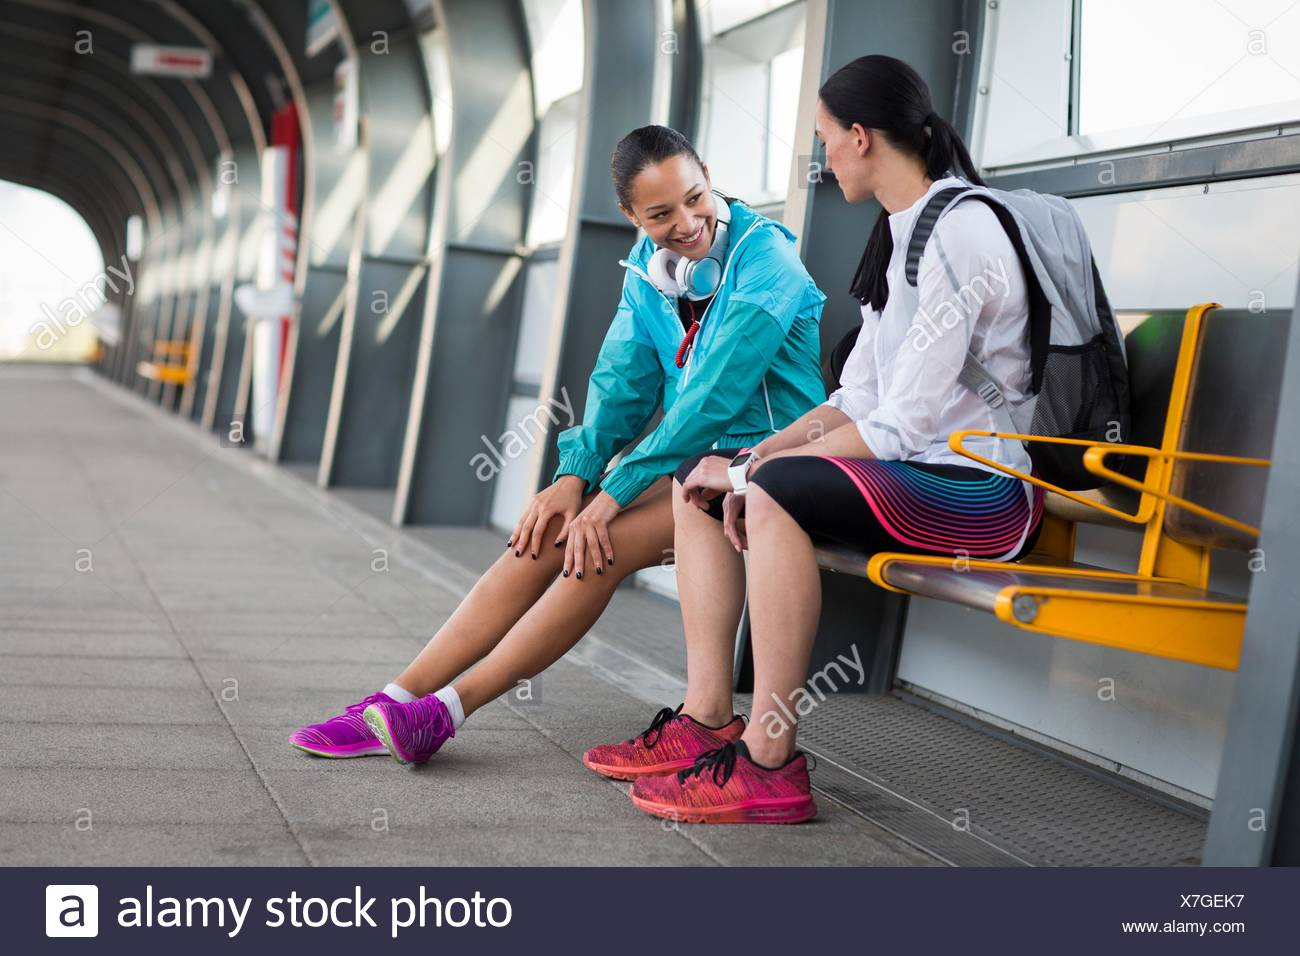 MODEL RELEASED. Two young women sitting on railway platform. - Stock Image